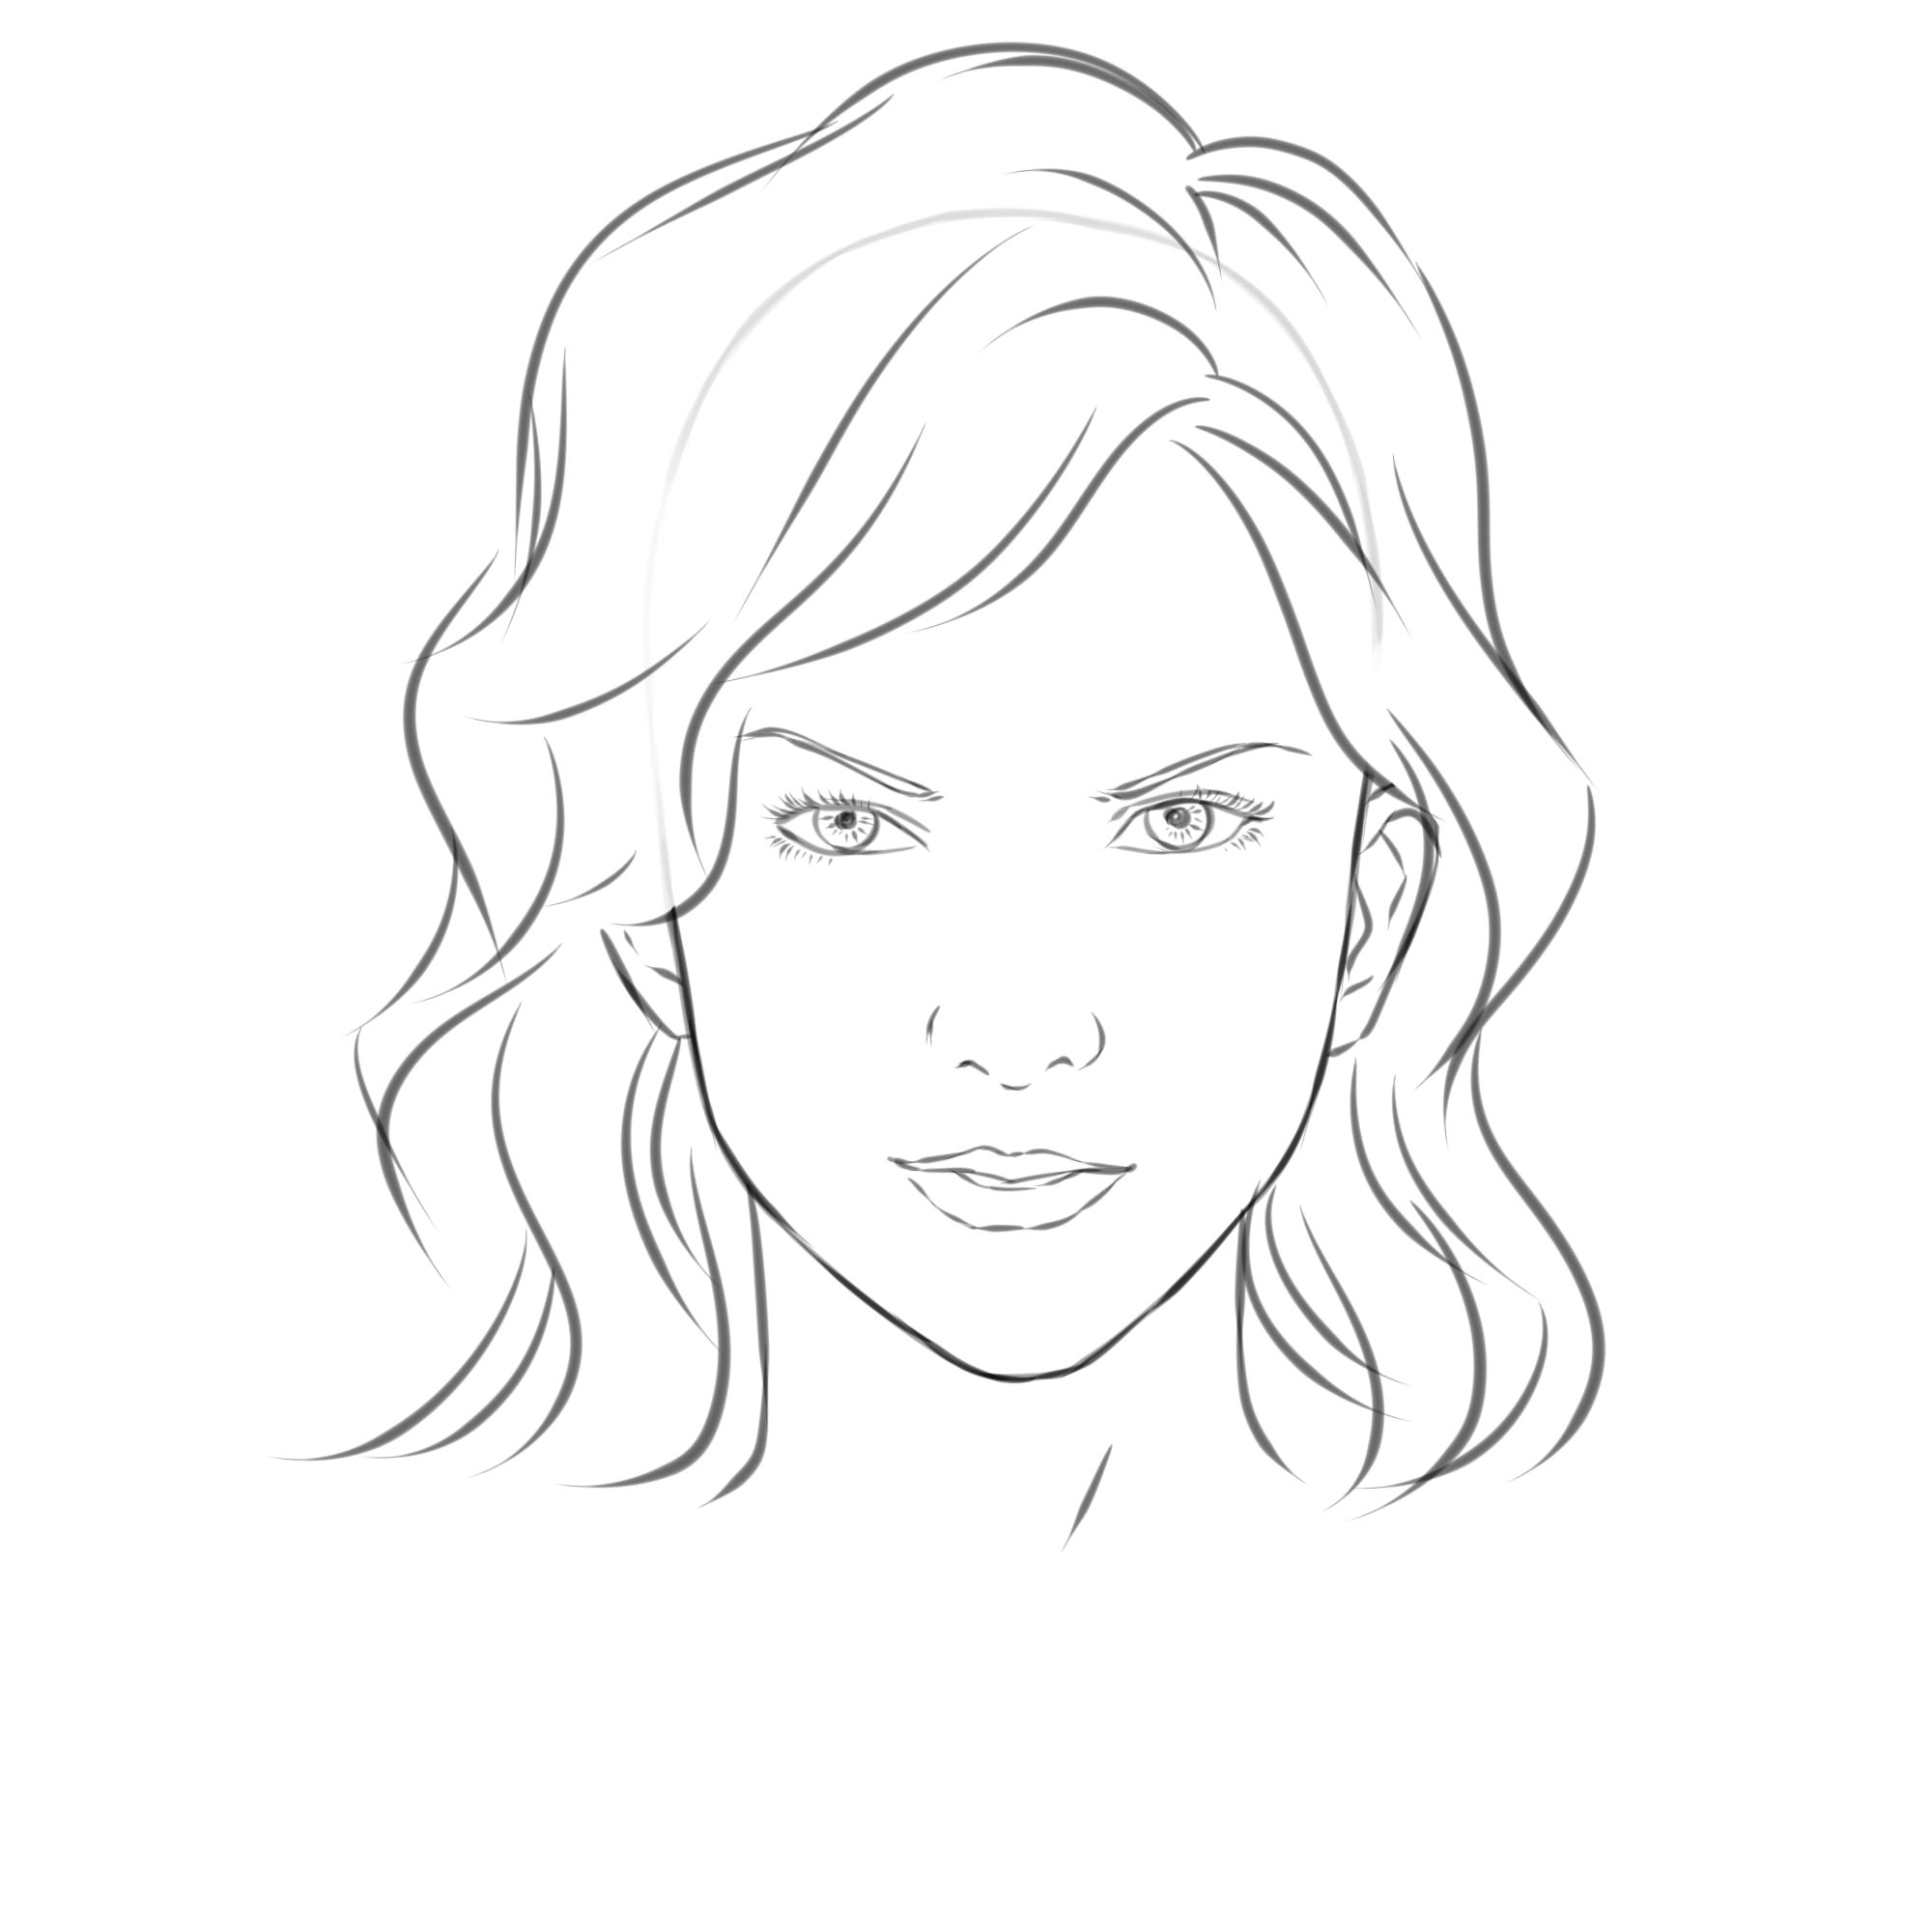 2000x2000 Simple Drawing Of A Girl Face How To Draw Girl Face For Kids